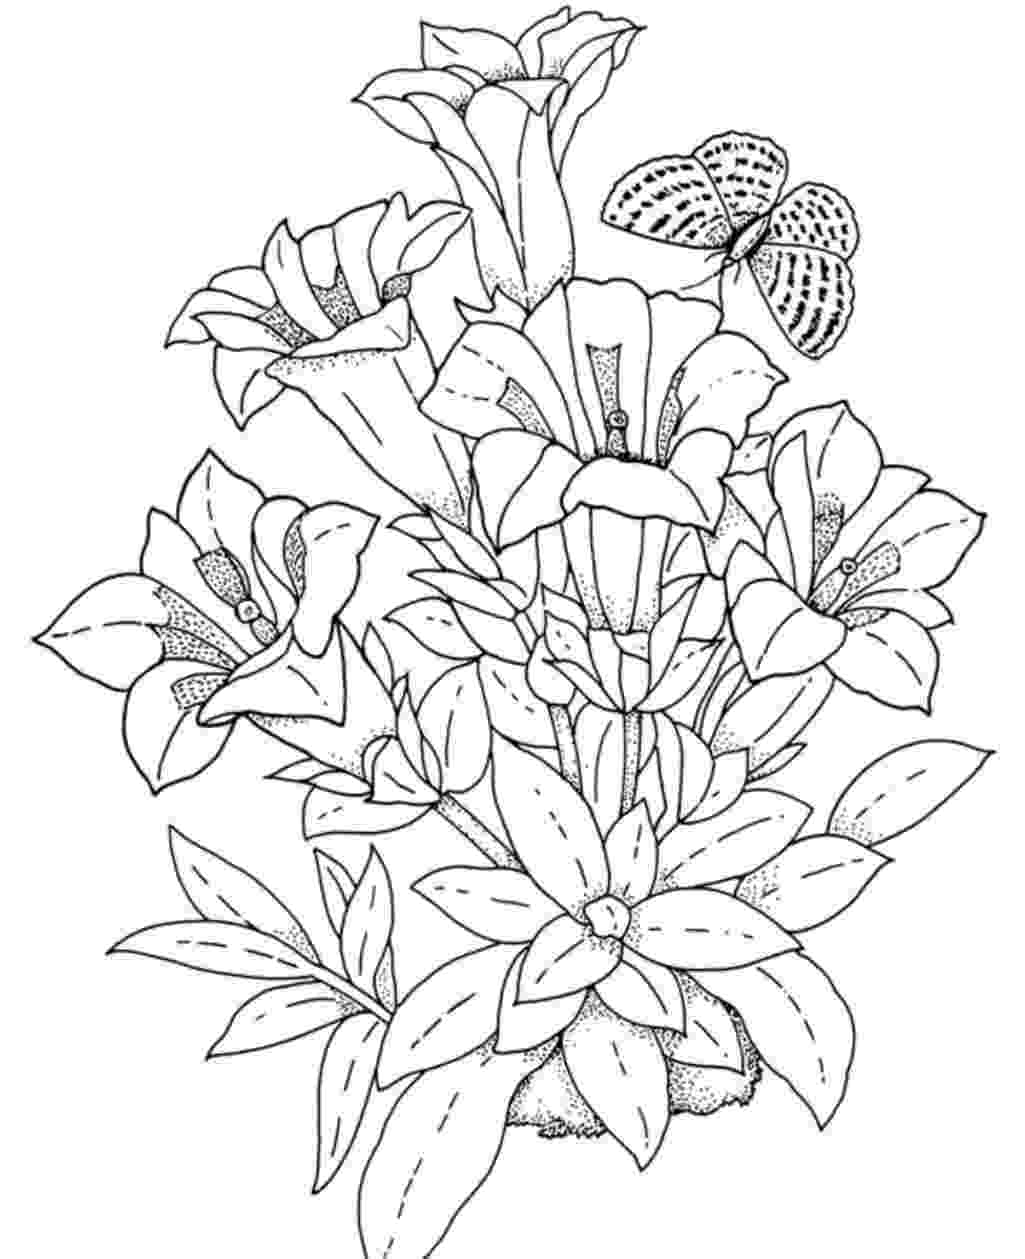 pictures of flowers to print and color detailed flower coloring pages to download and print for free flowers to color print pictures of and